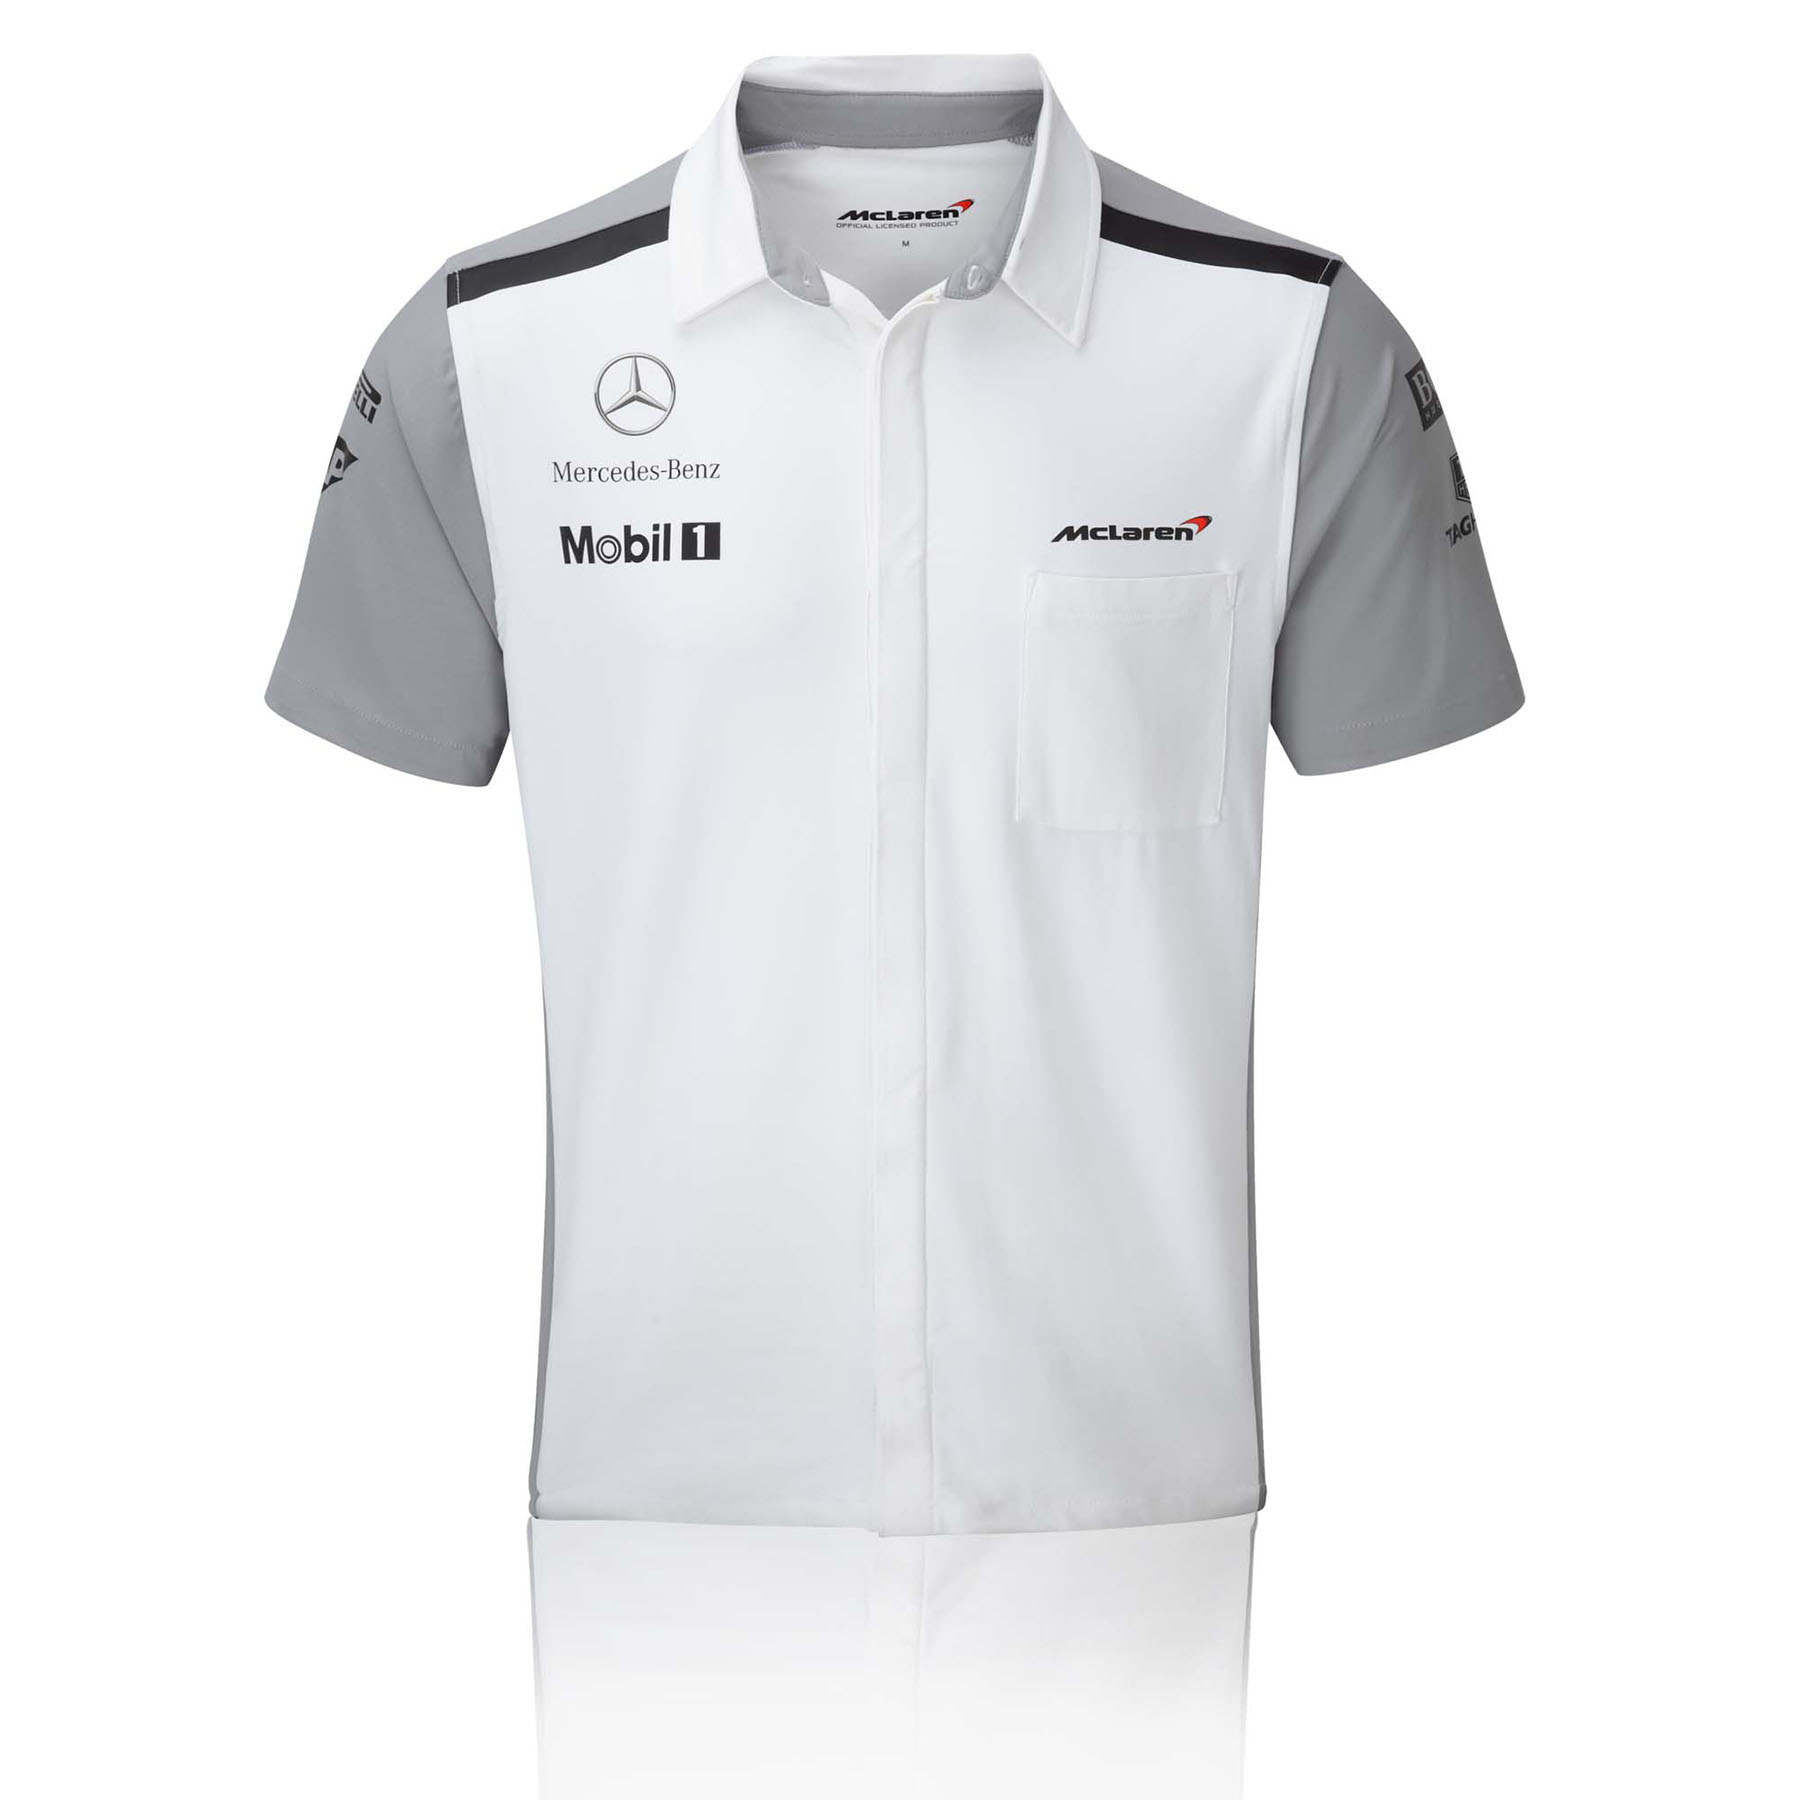 McLaren Mercedes 2014 Team Shirt